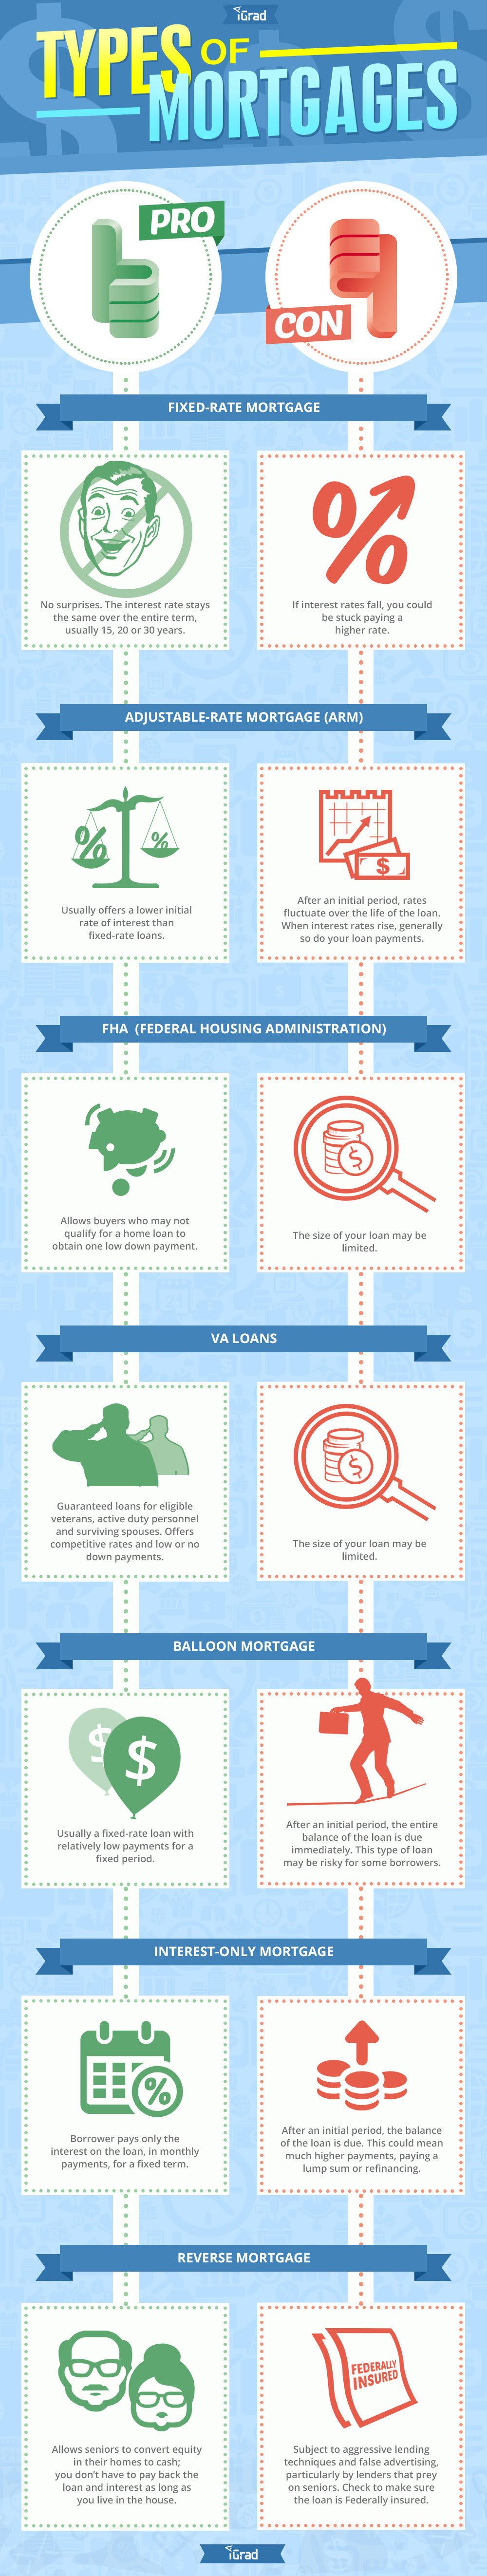 Infographic: Types Of Mortgages